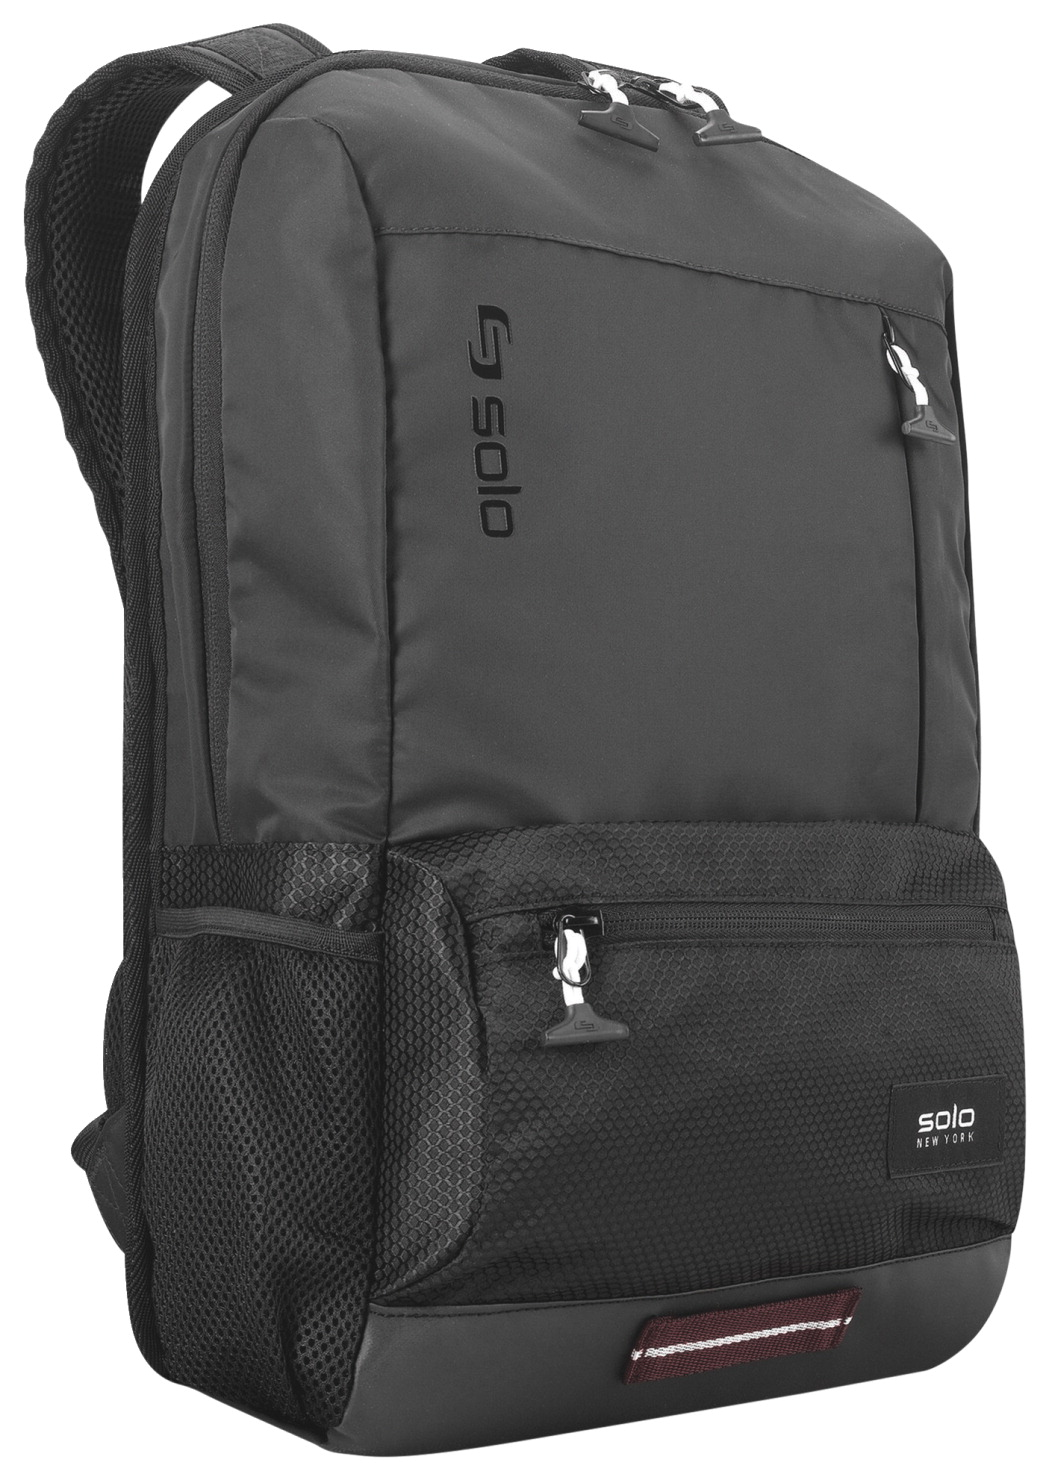 Solo Draft Carrying Case (Backpack) for 15.6